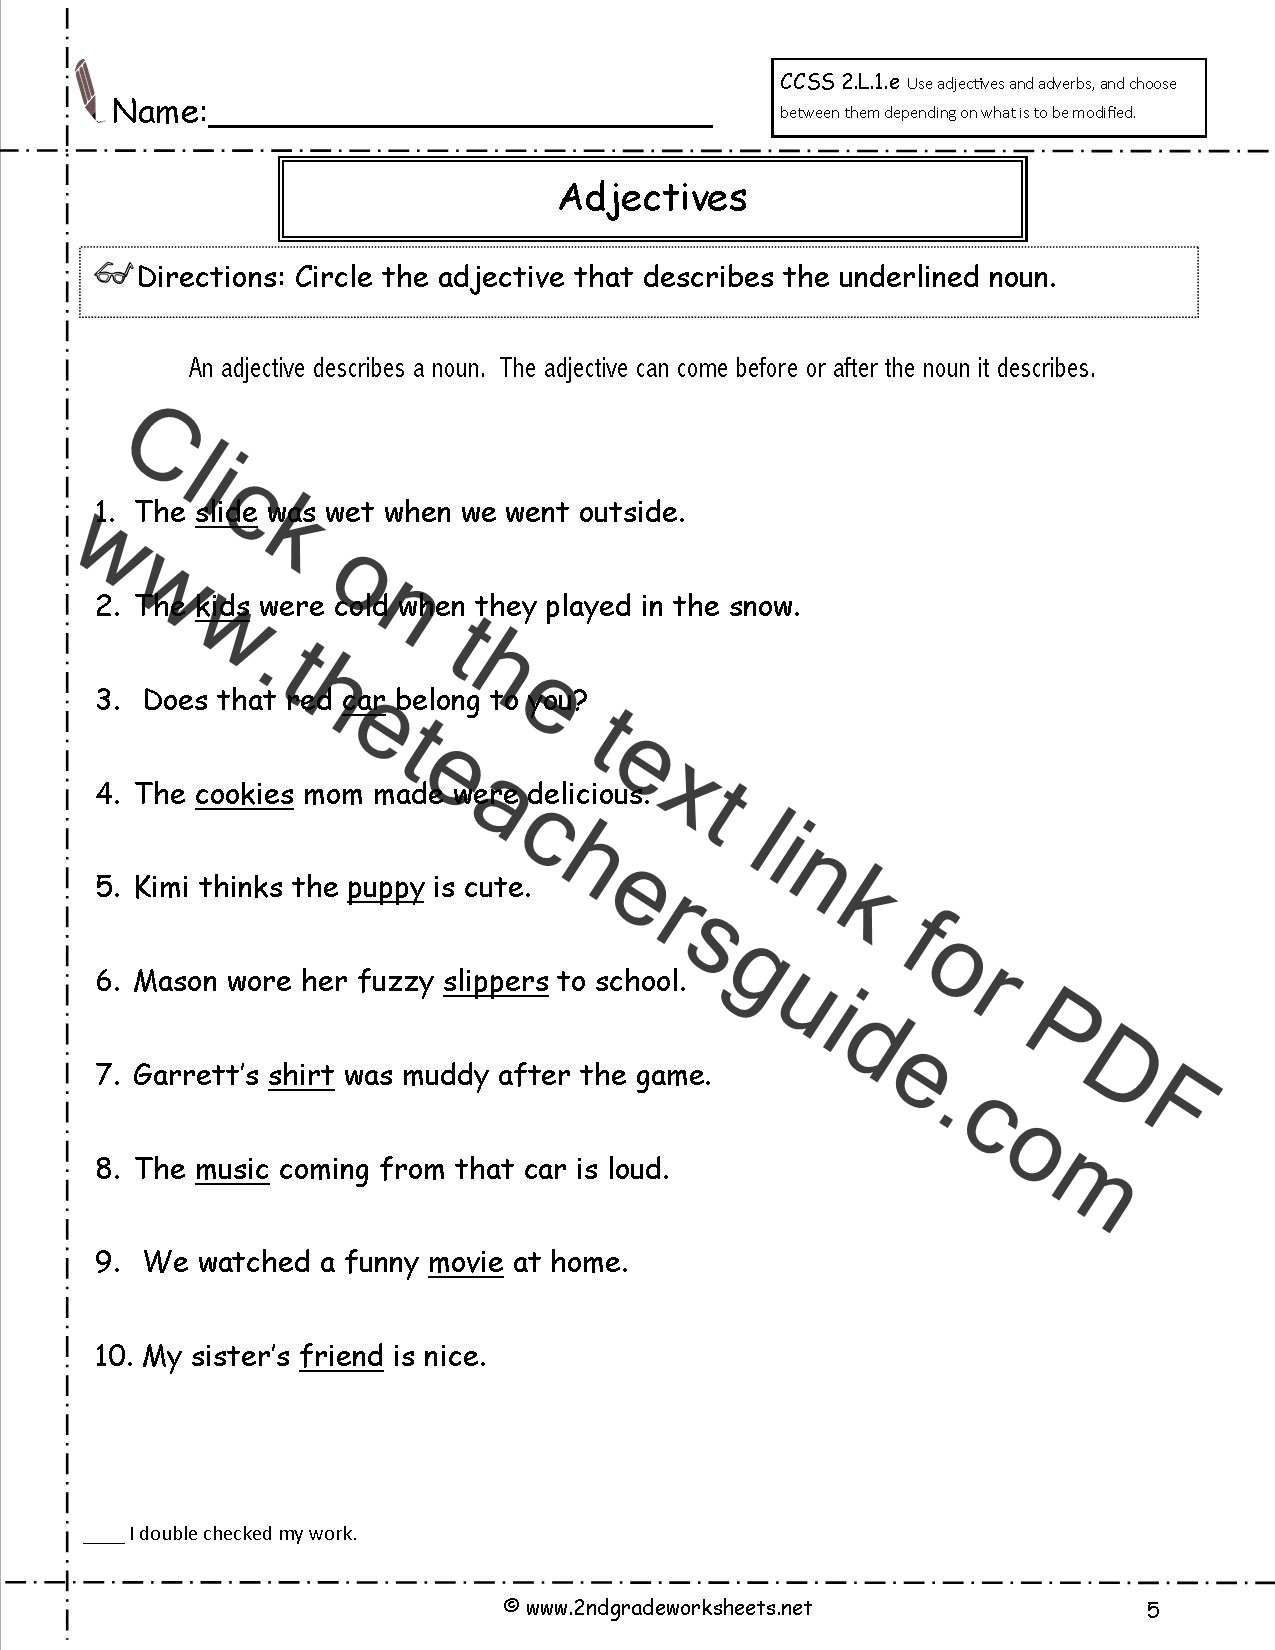 Free Using Adjectives and Adverbs Worksheets – Adjective Adverb Worksheet